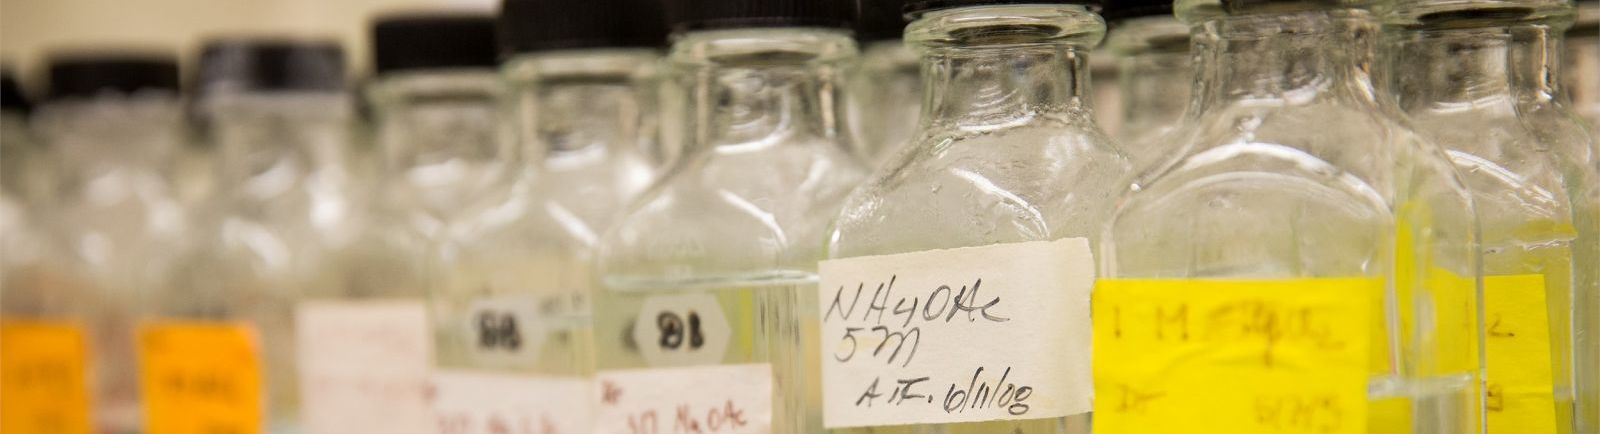 Glass containers with yellow labels lined up in a Biology lab